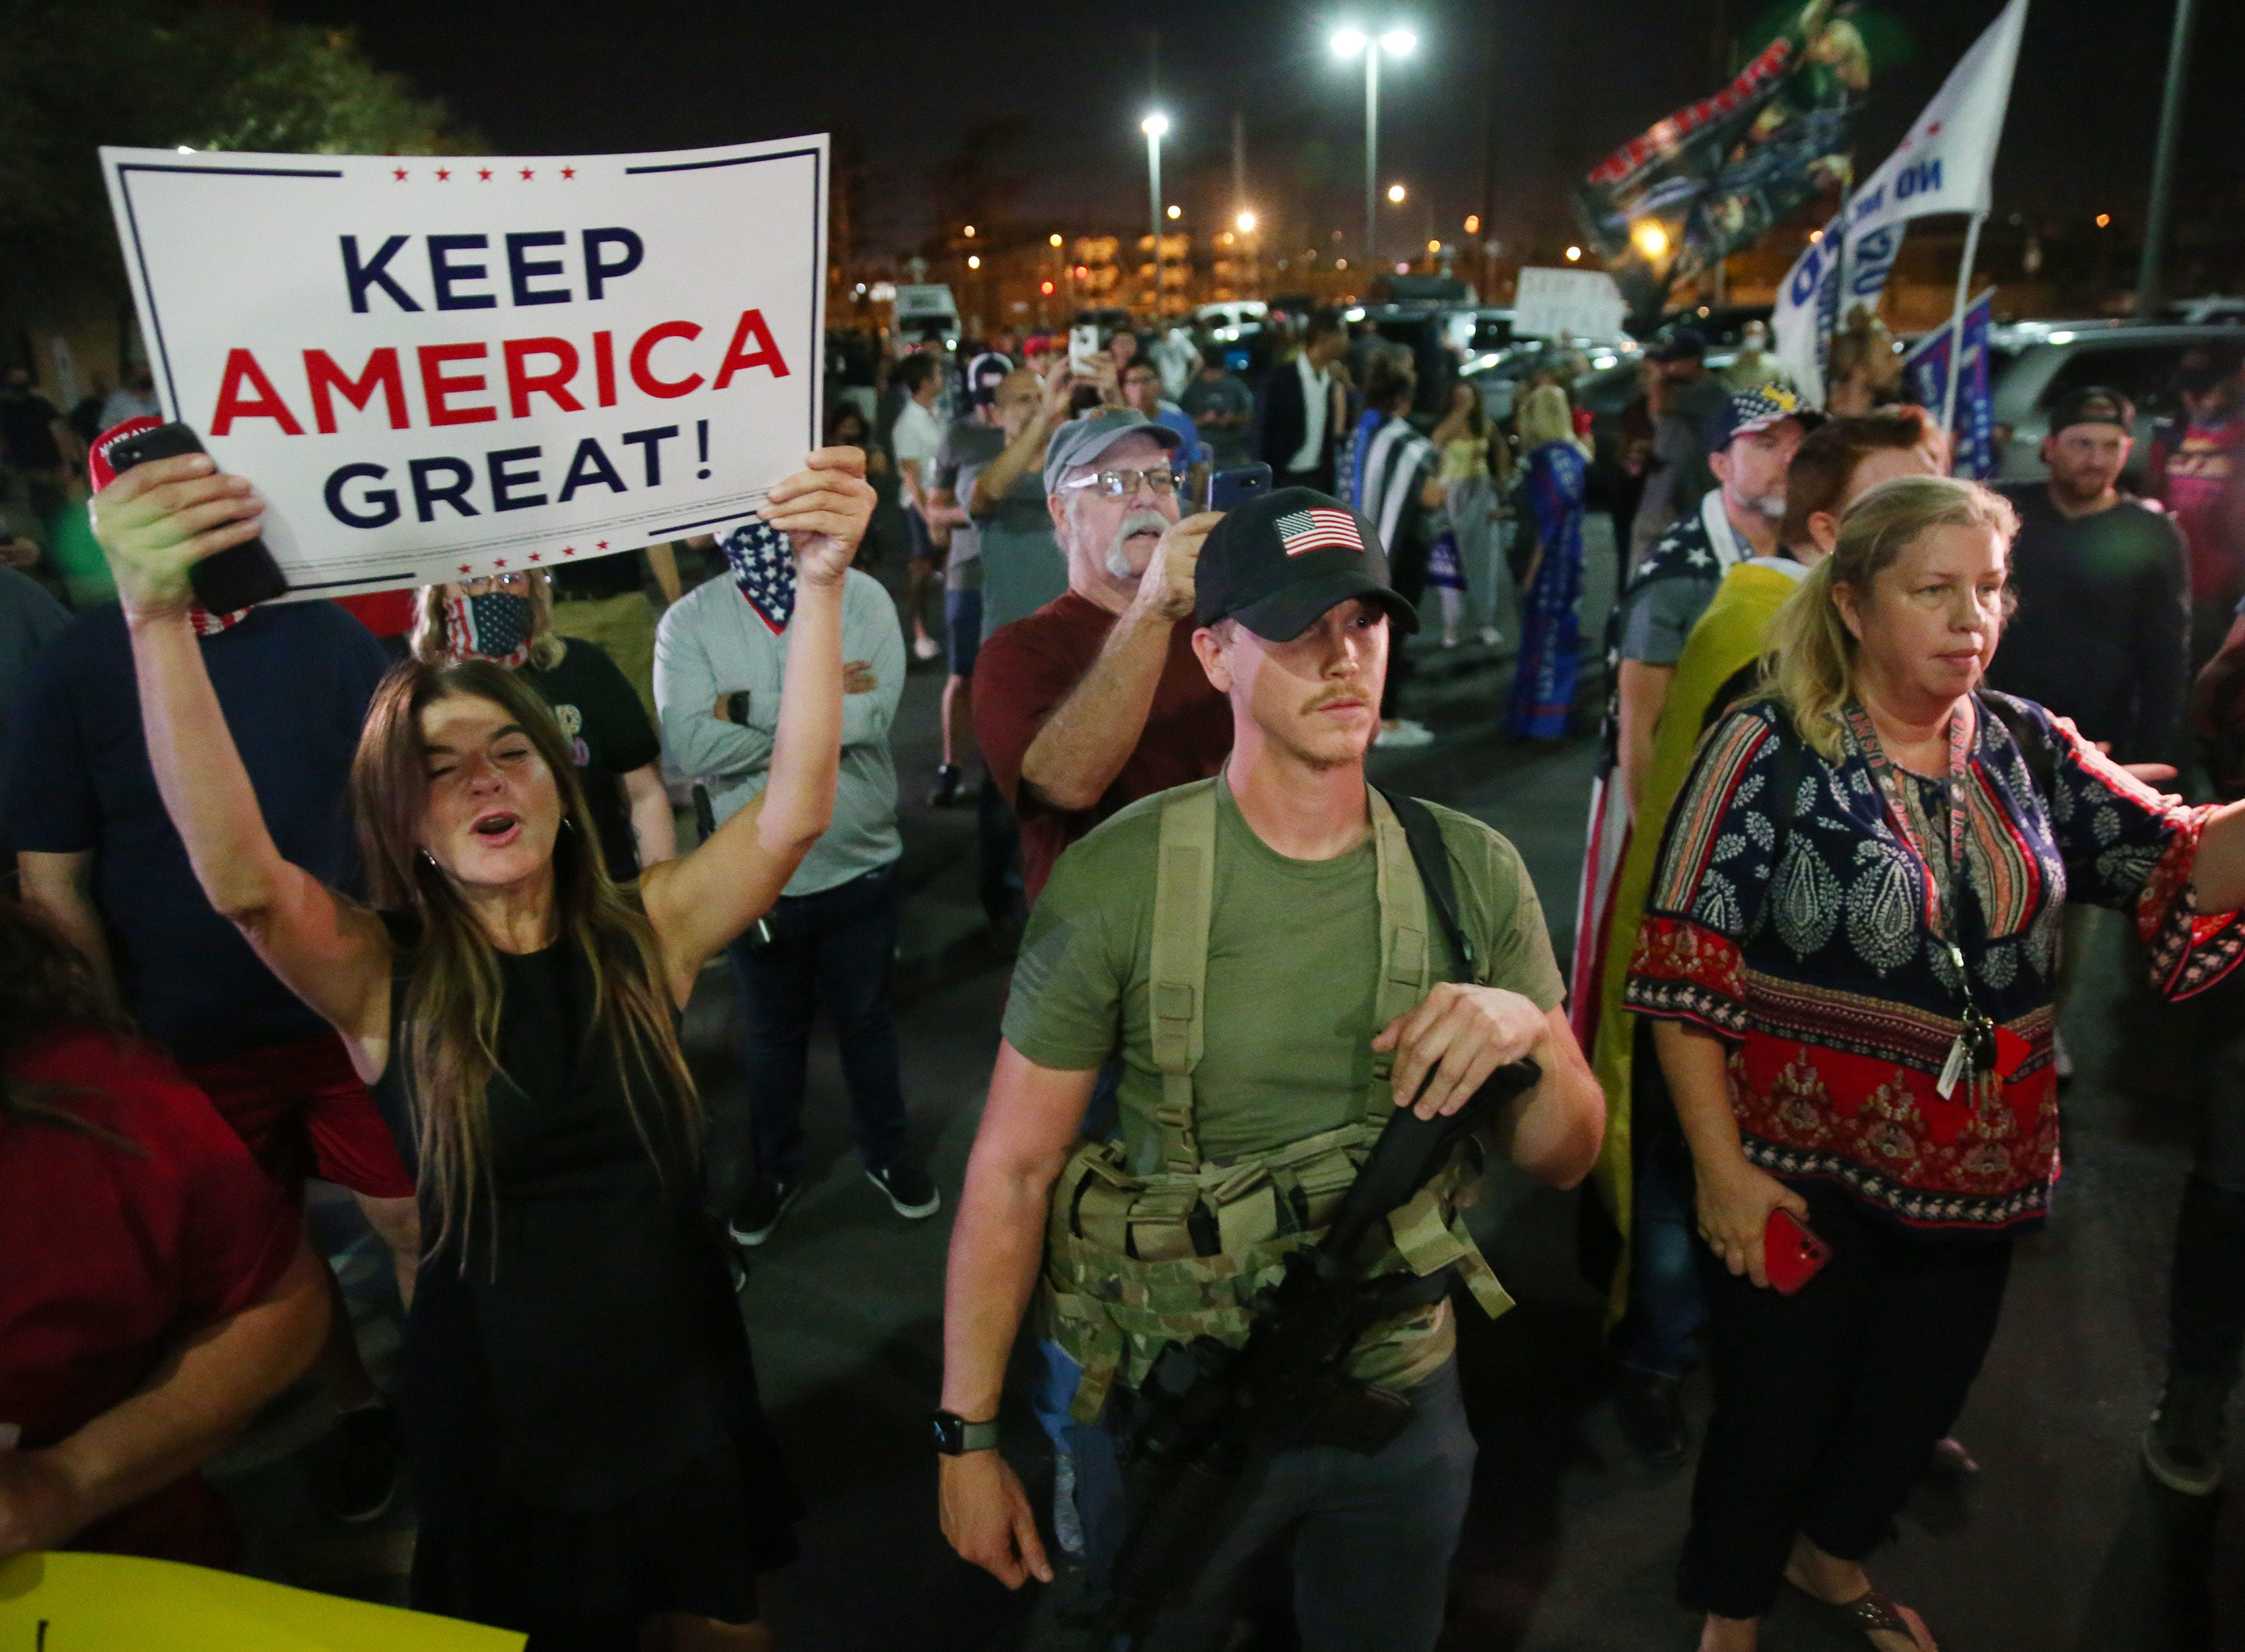 Trump supporters are getting their crazy on in Arizona